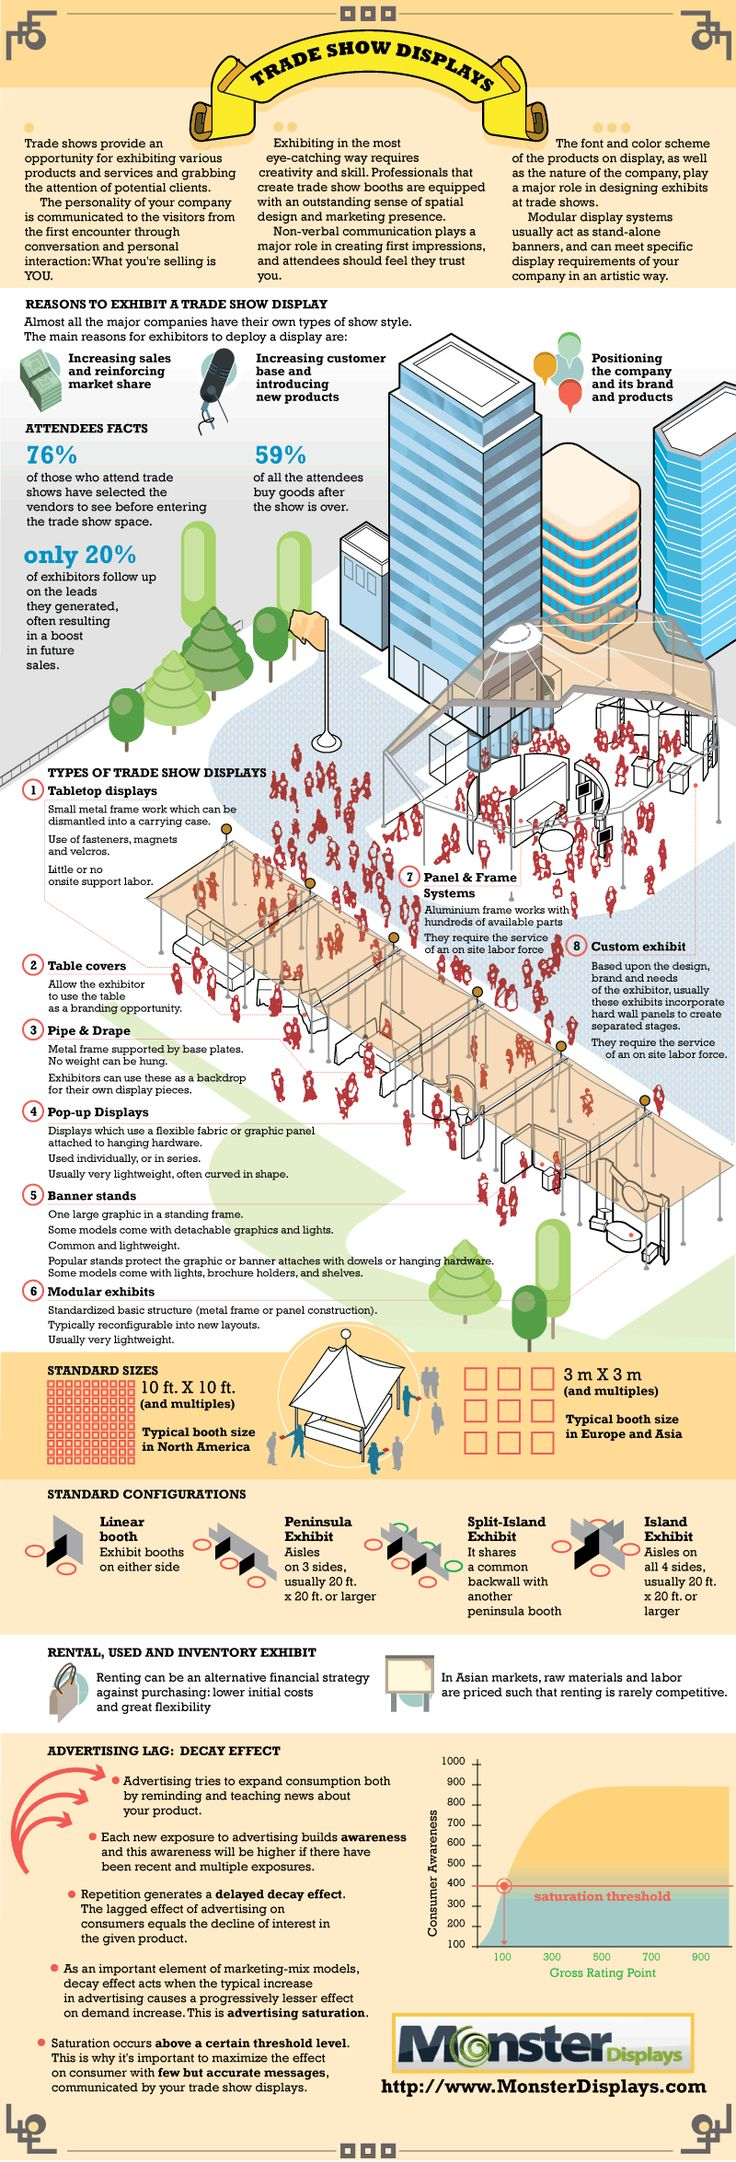 Trade shows are a good opportunity to exhibit various products and services while also attracting new customers.  This infographic points out ways in